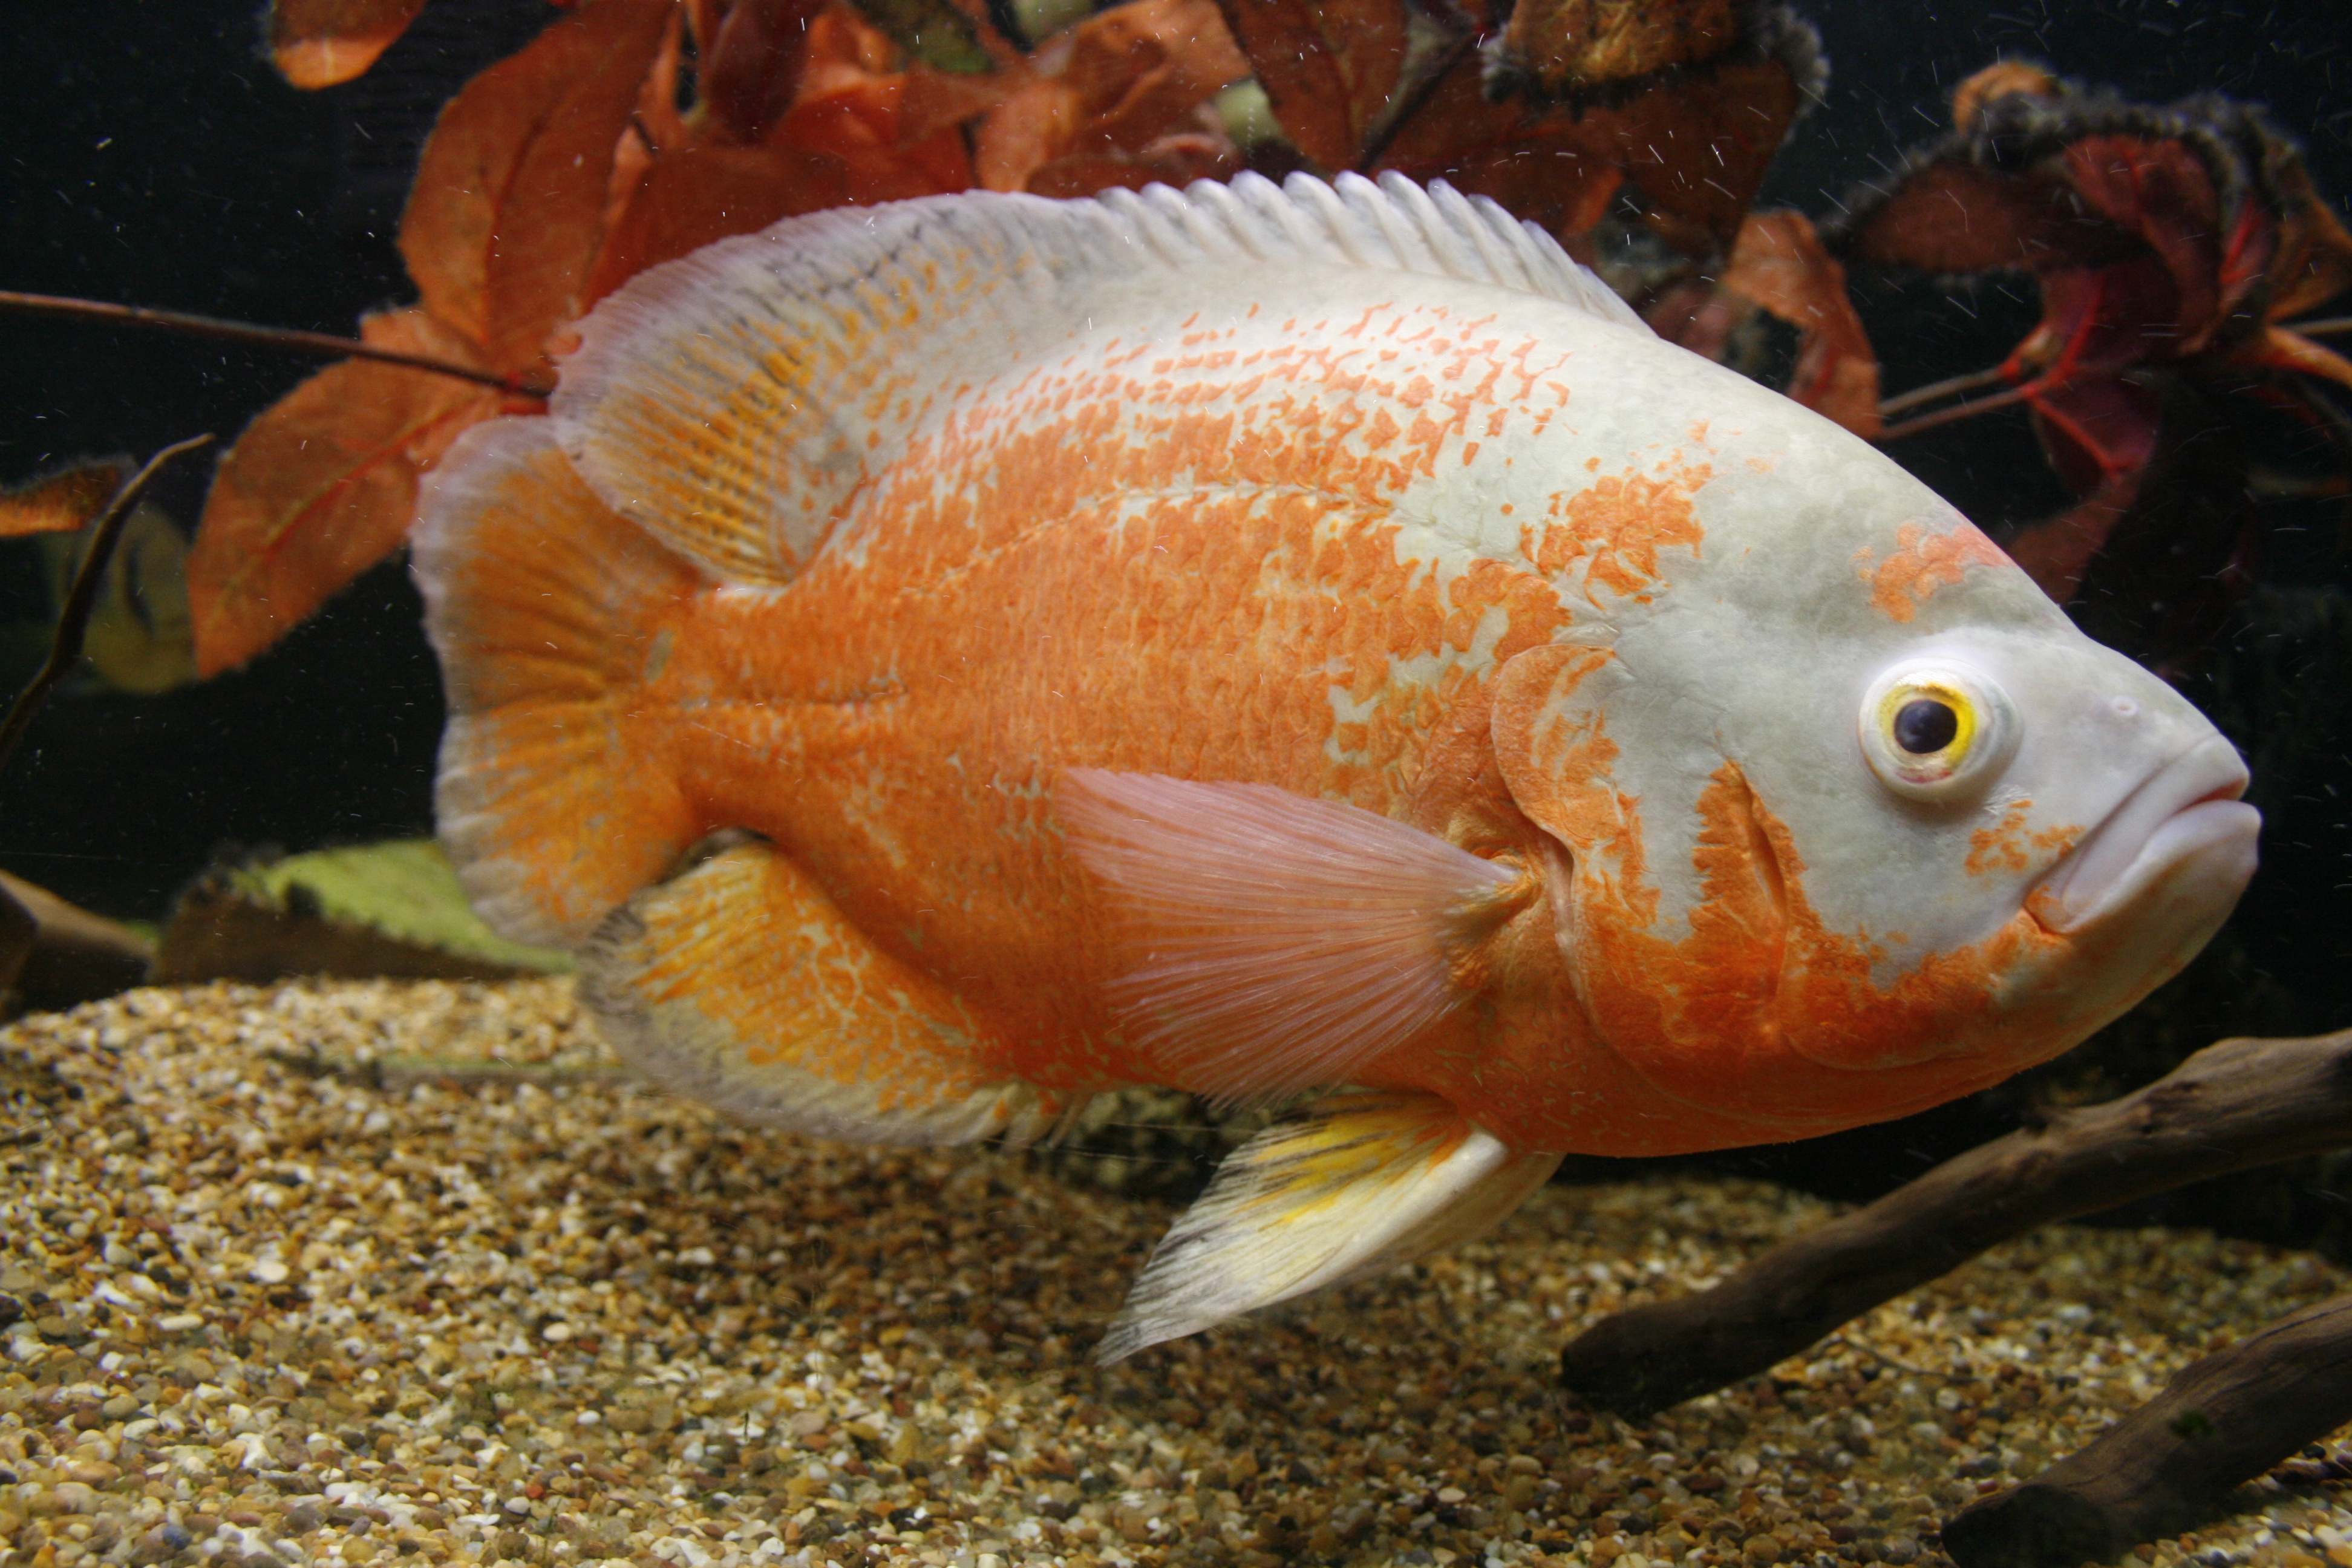 20947037 further 150707 Salvation Fish Canada First Nations Animals Conservation World likewise Betta Fish Fish moreover Johanna Mendillo Alaska Bound July 13 2012 as well Severum for sale. on oscar fish species